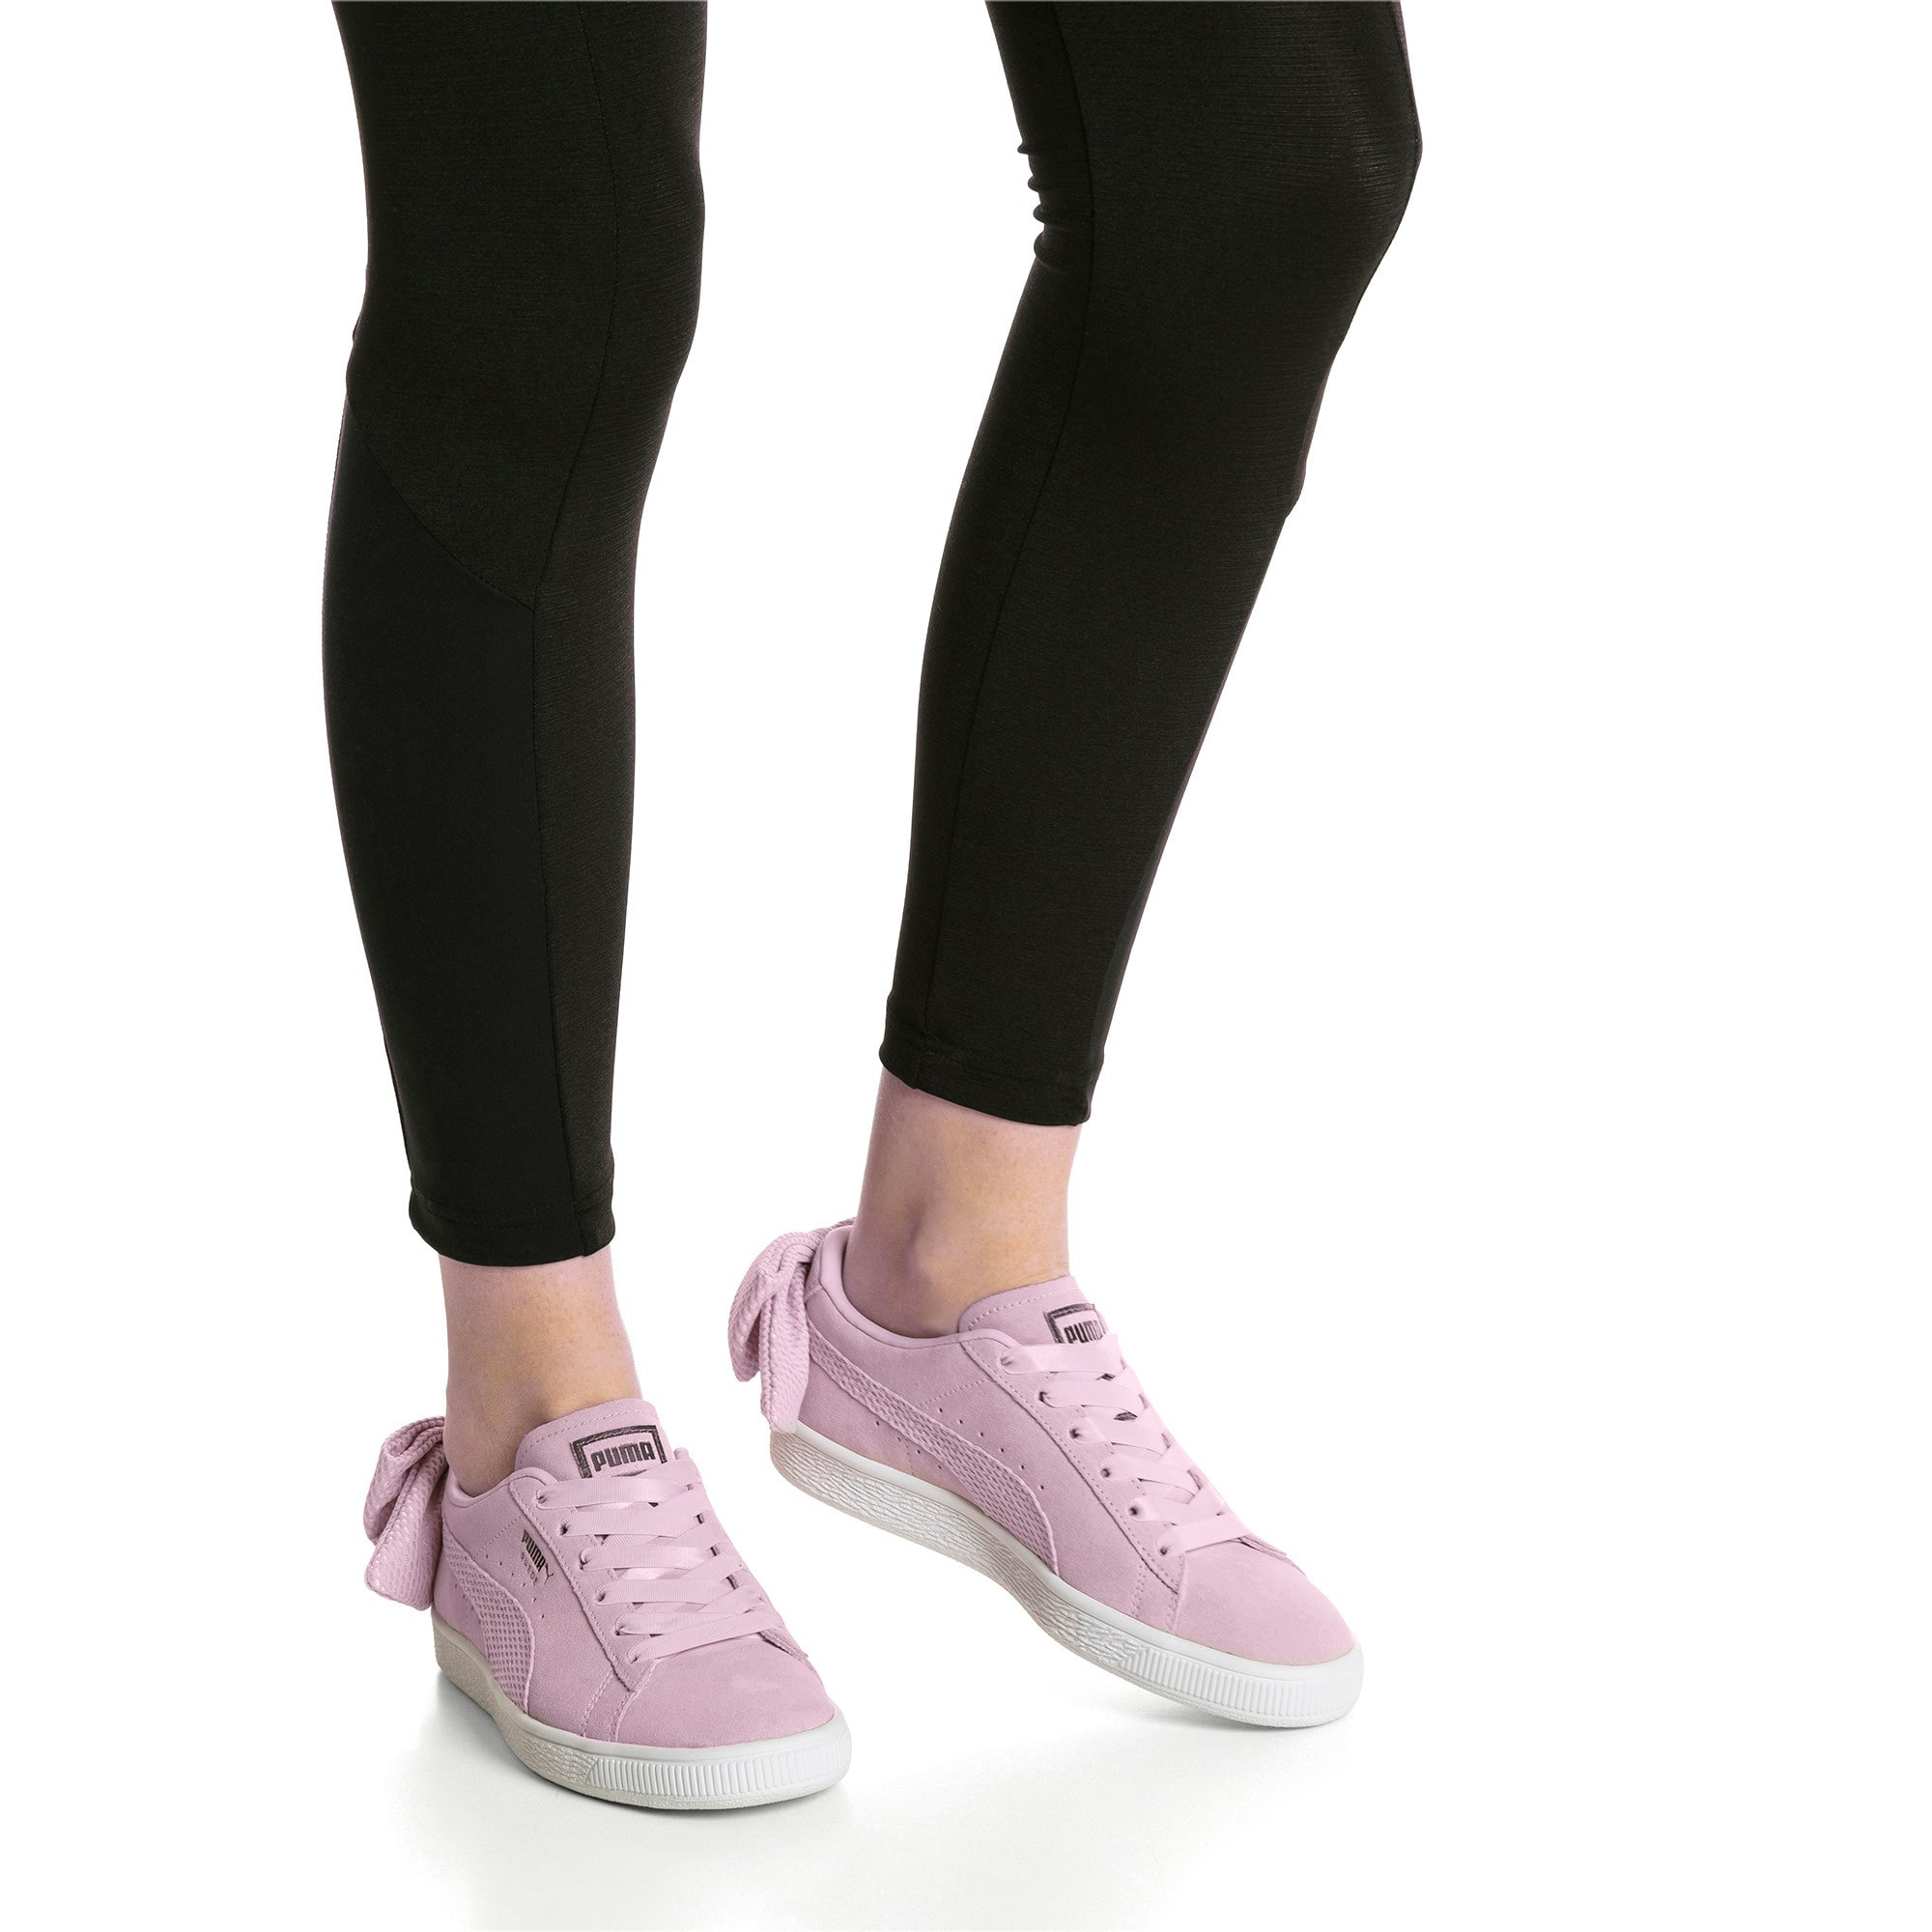 Thumbnail 7 of Suede Bow Uprising Women's Sneakers, Winsome Orchid-Puma White, medium